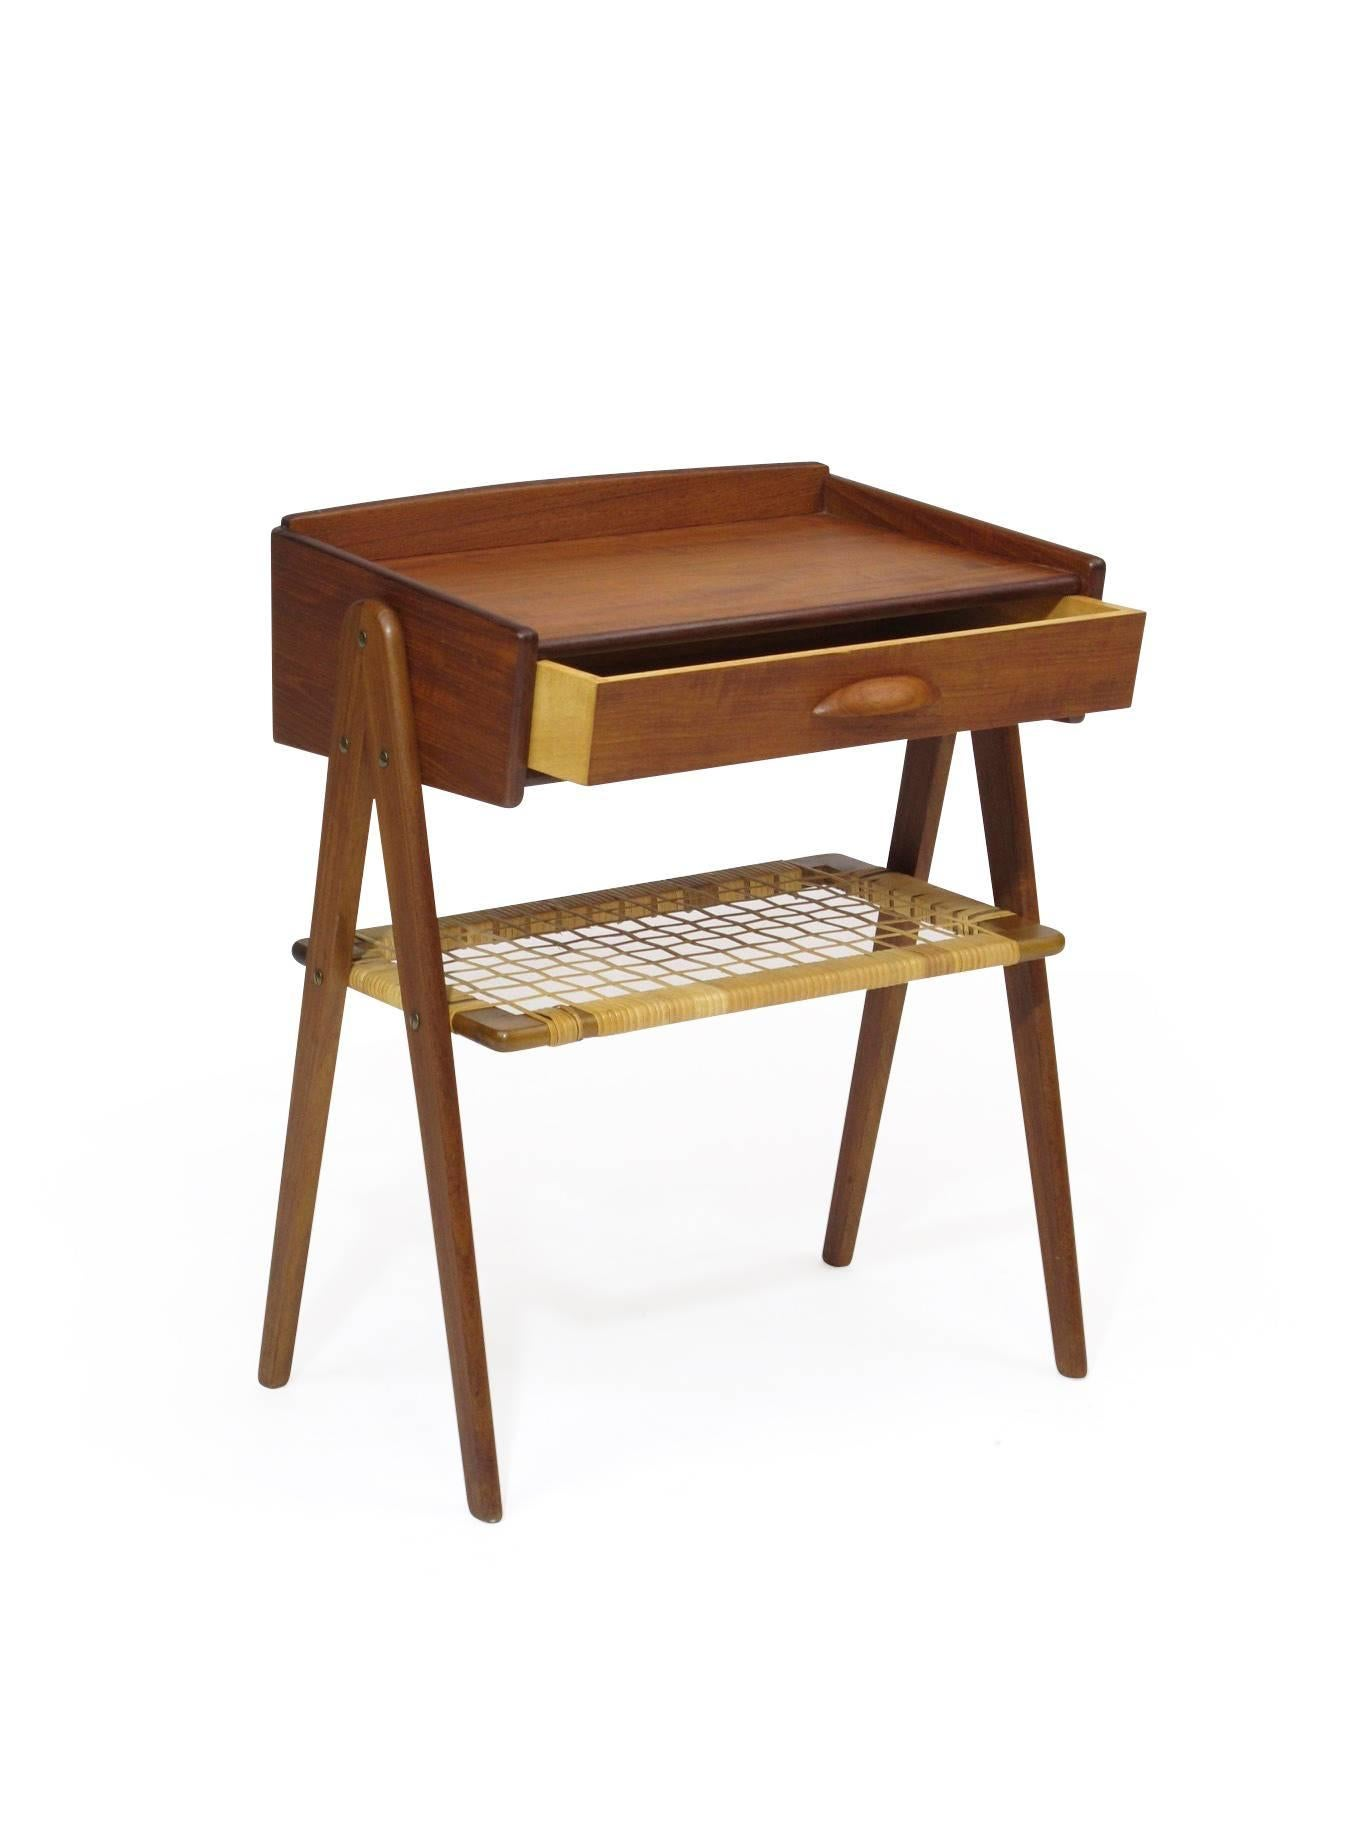 Danish Teak Side Table Nightstand With Woven Cane Shelf For Sale At 1stdibs